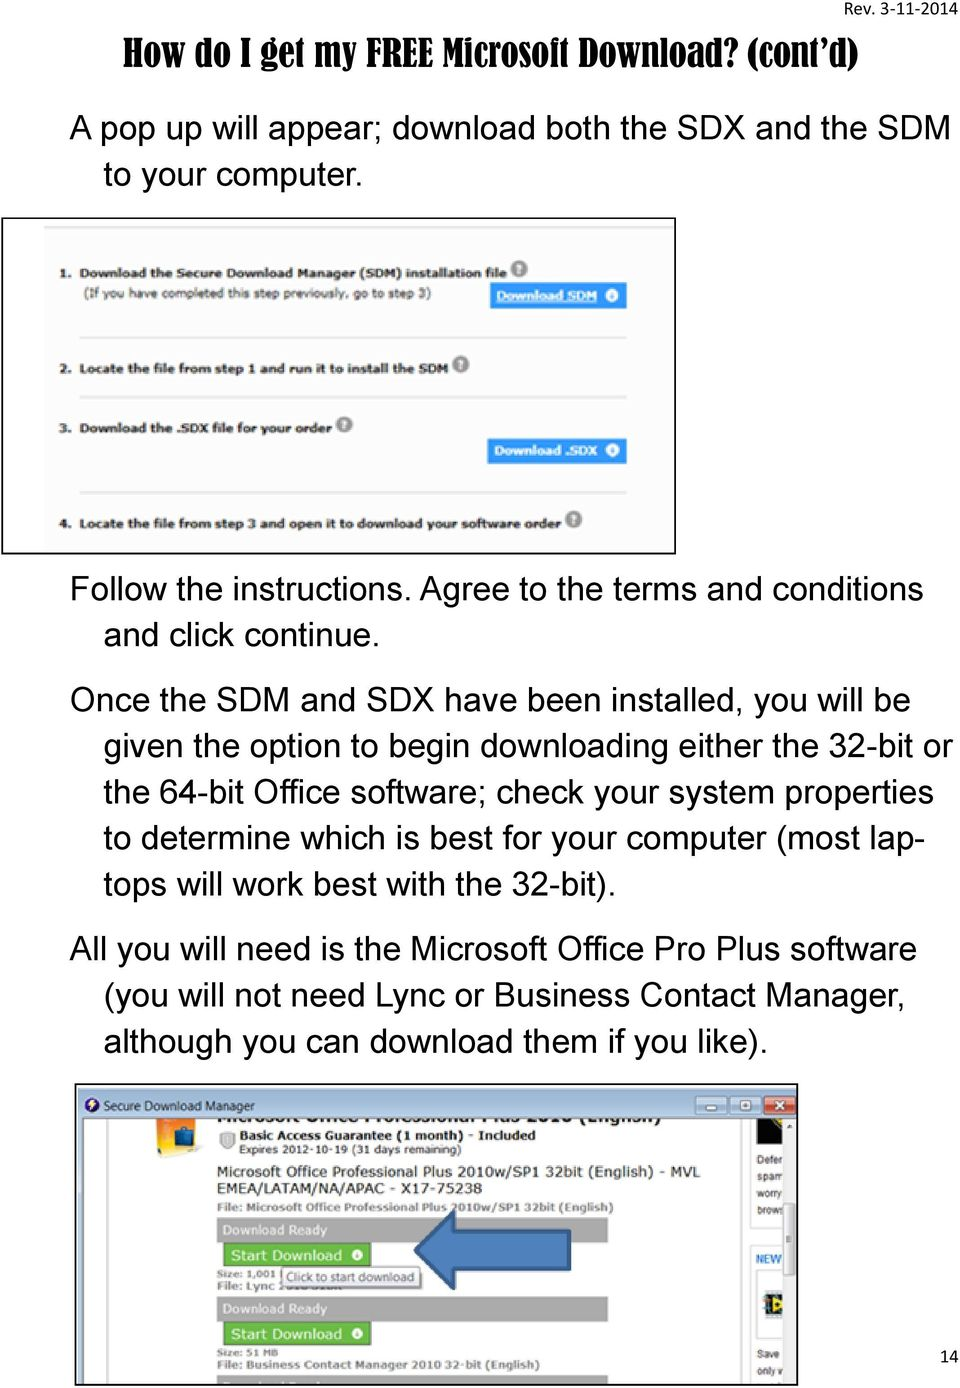 Once the SDM and SDX have been installed, you will be given the option to begin downloading either the 32-bit or the 64-bit Office software; check your